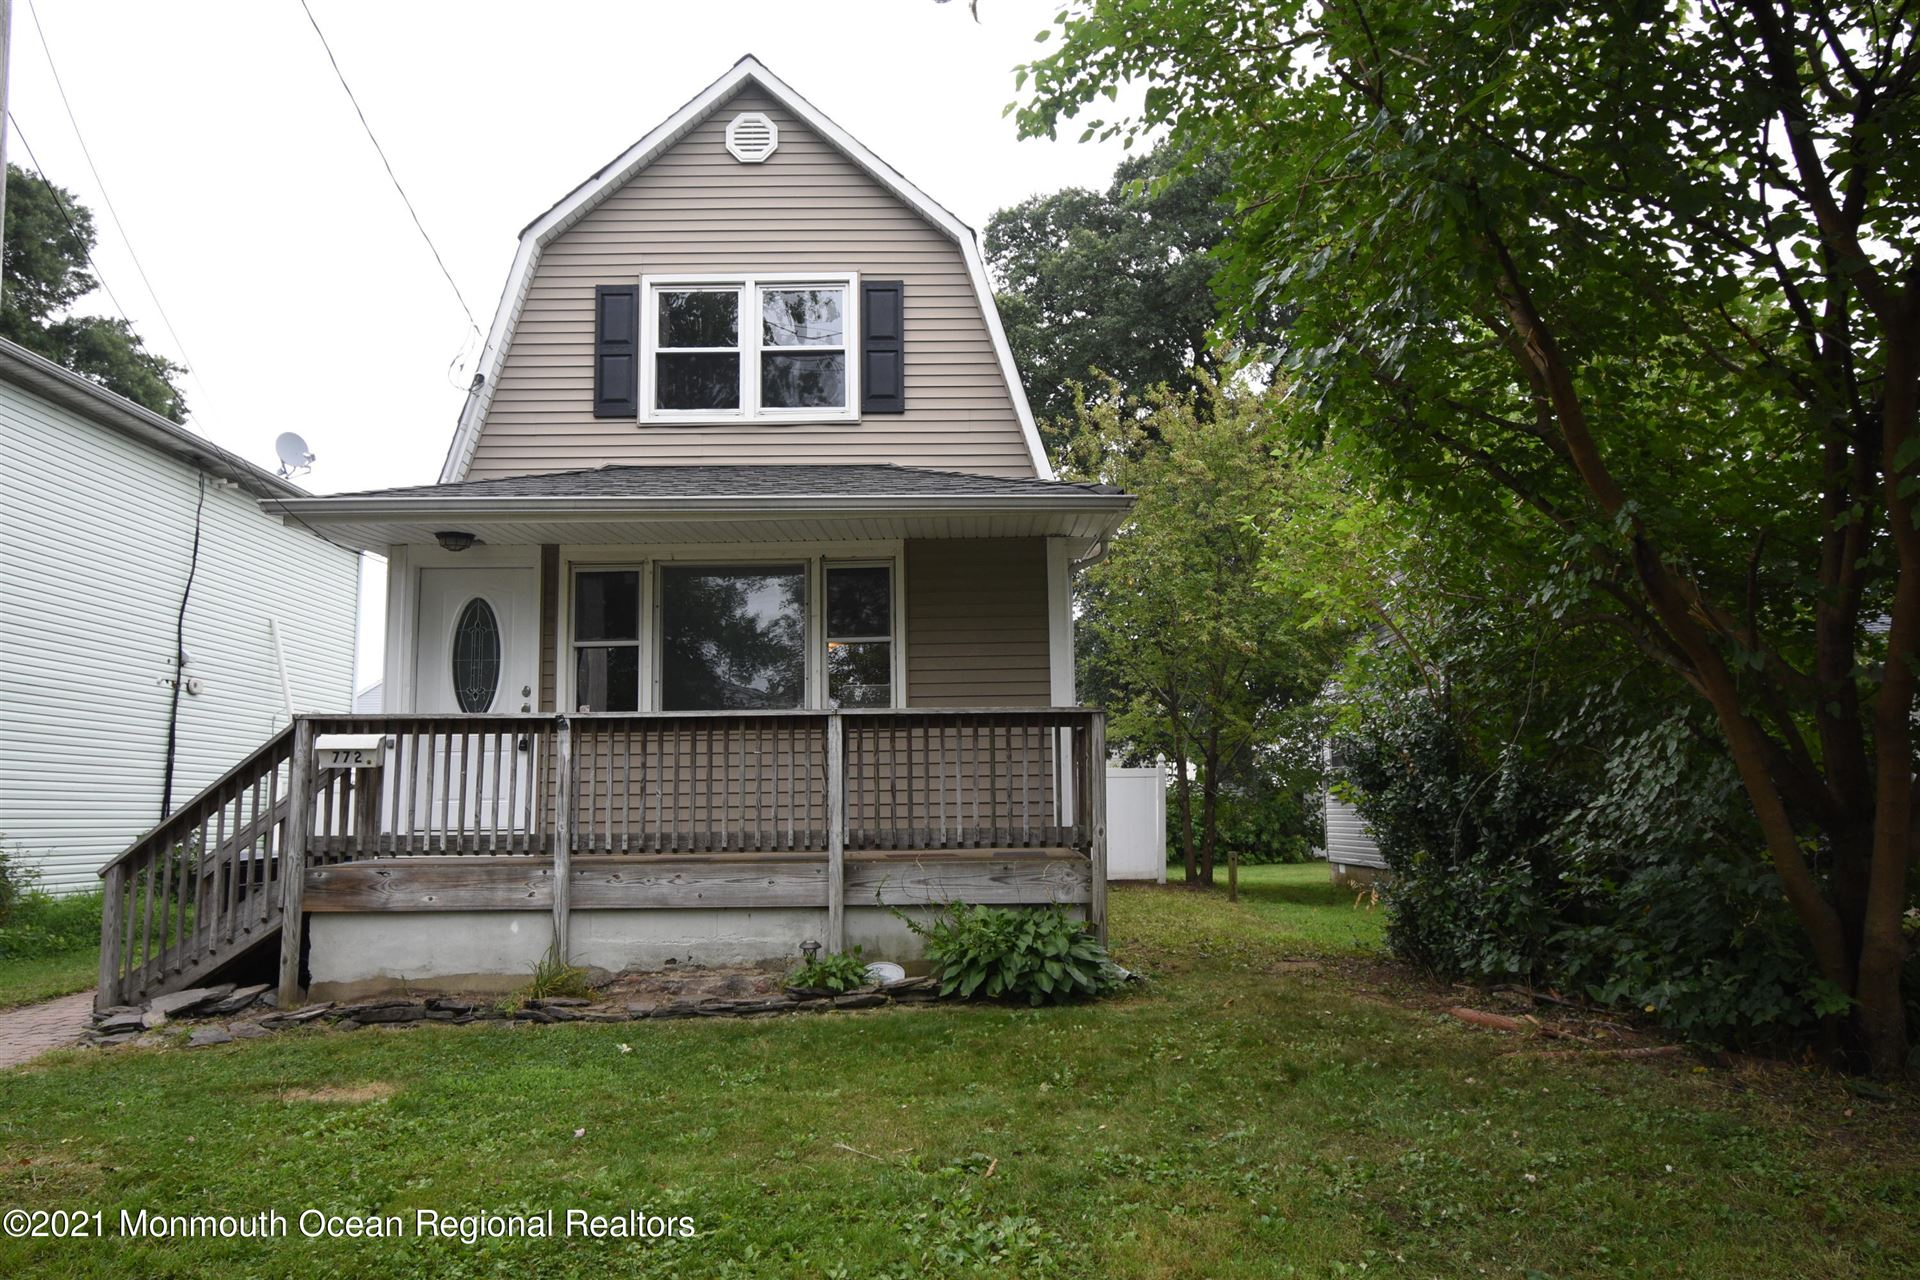 772 Monmouth Parkway, Middletown, NJ 07748 - MLS#: 22127878